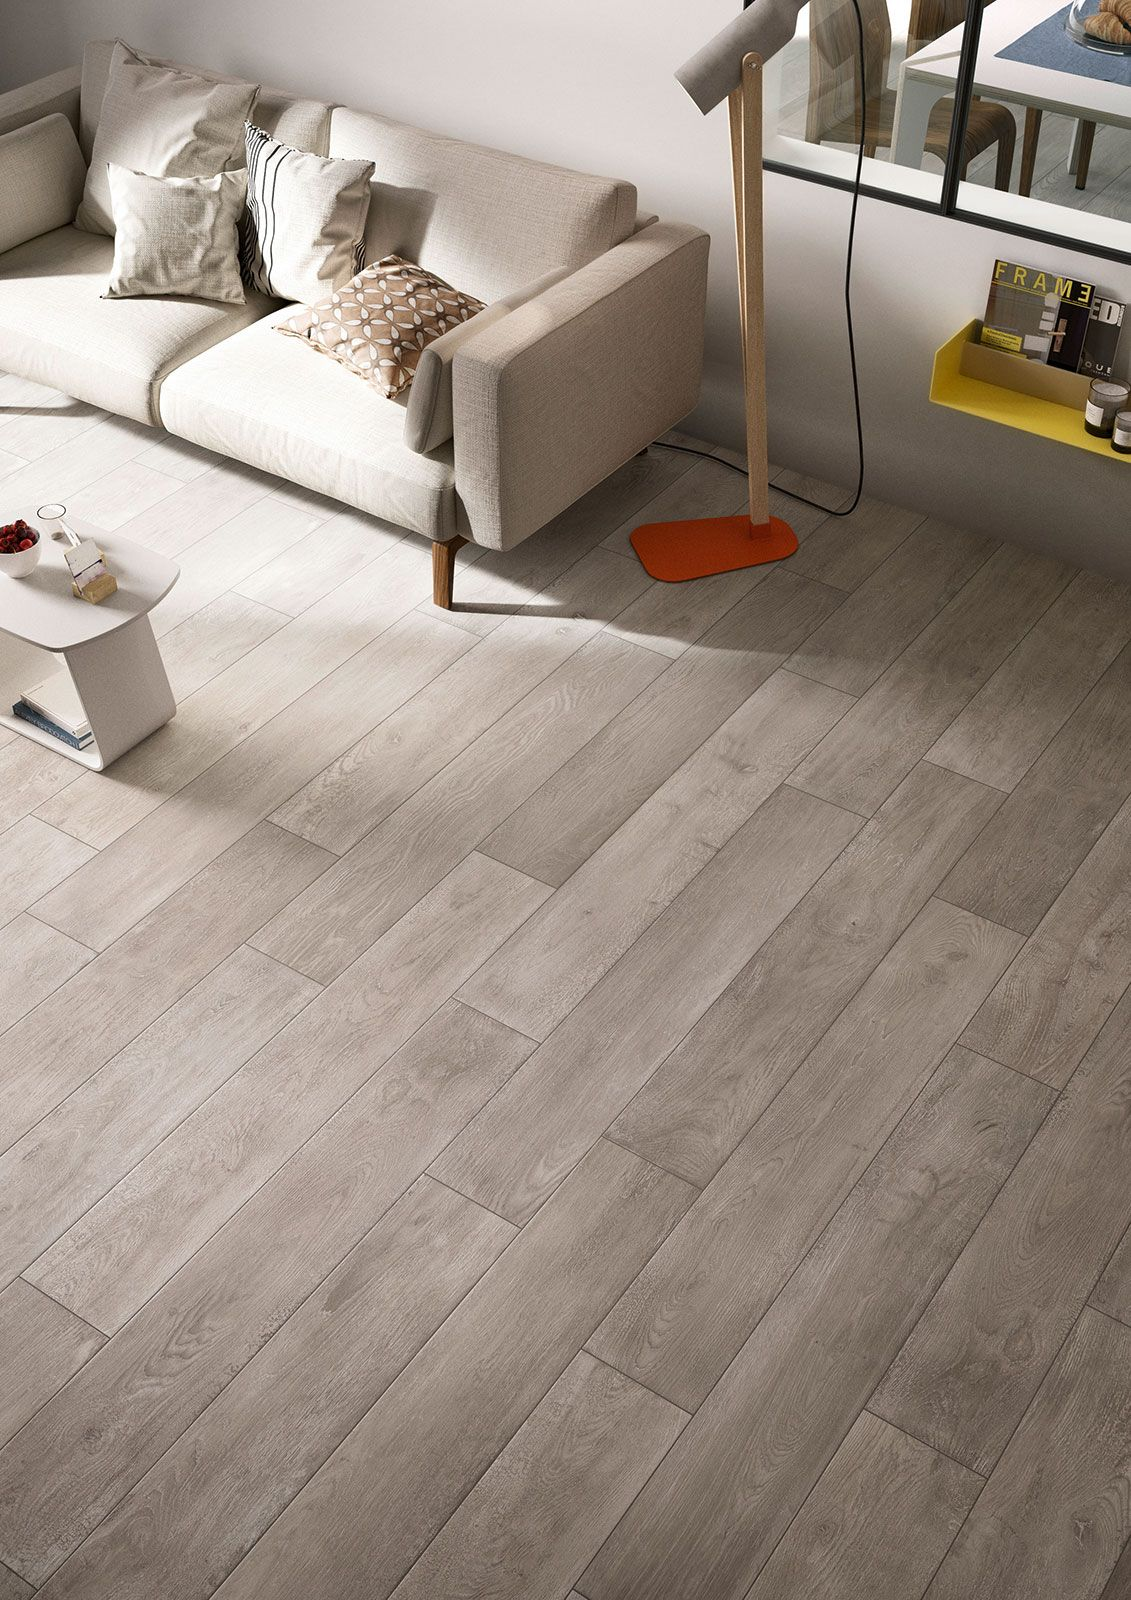 Treverktime Ceramic Tiles Marazzi6535 Flooring In 2018